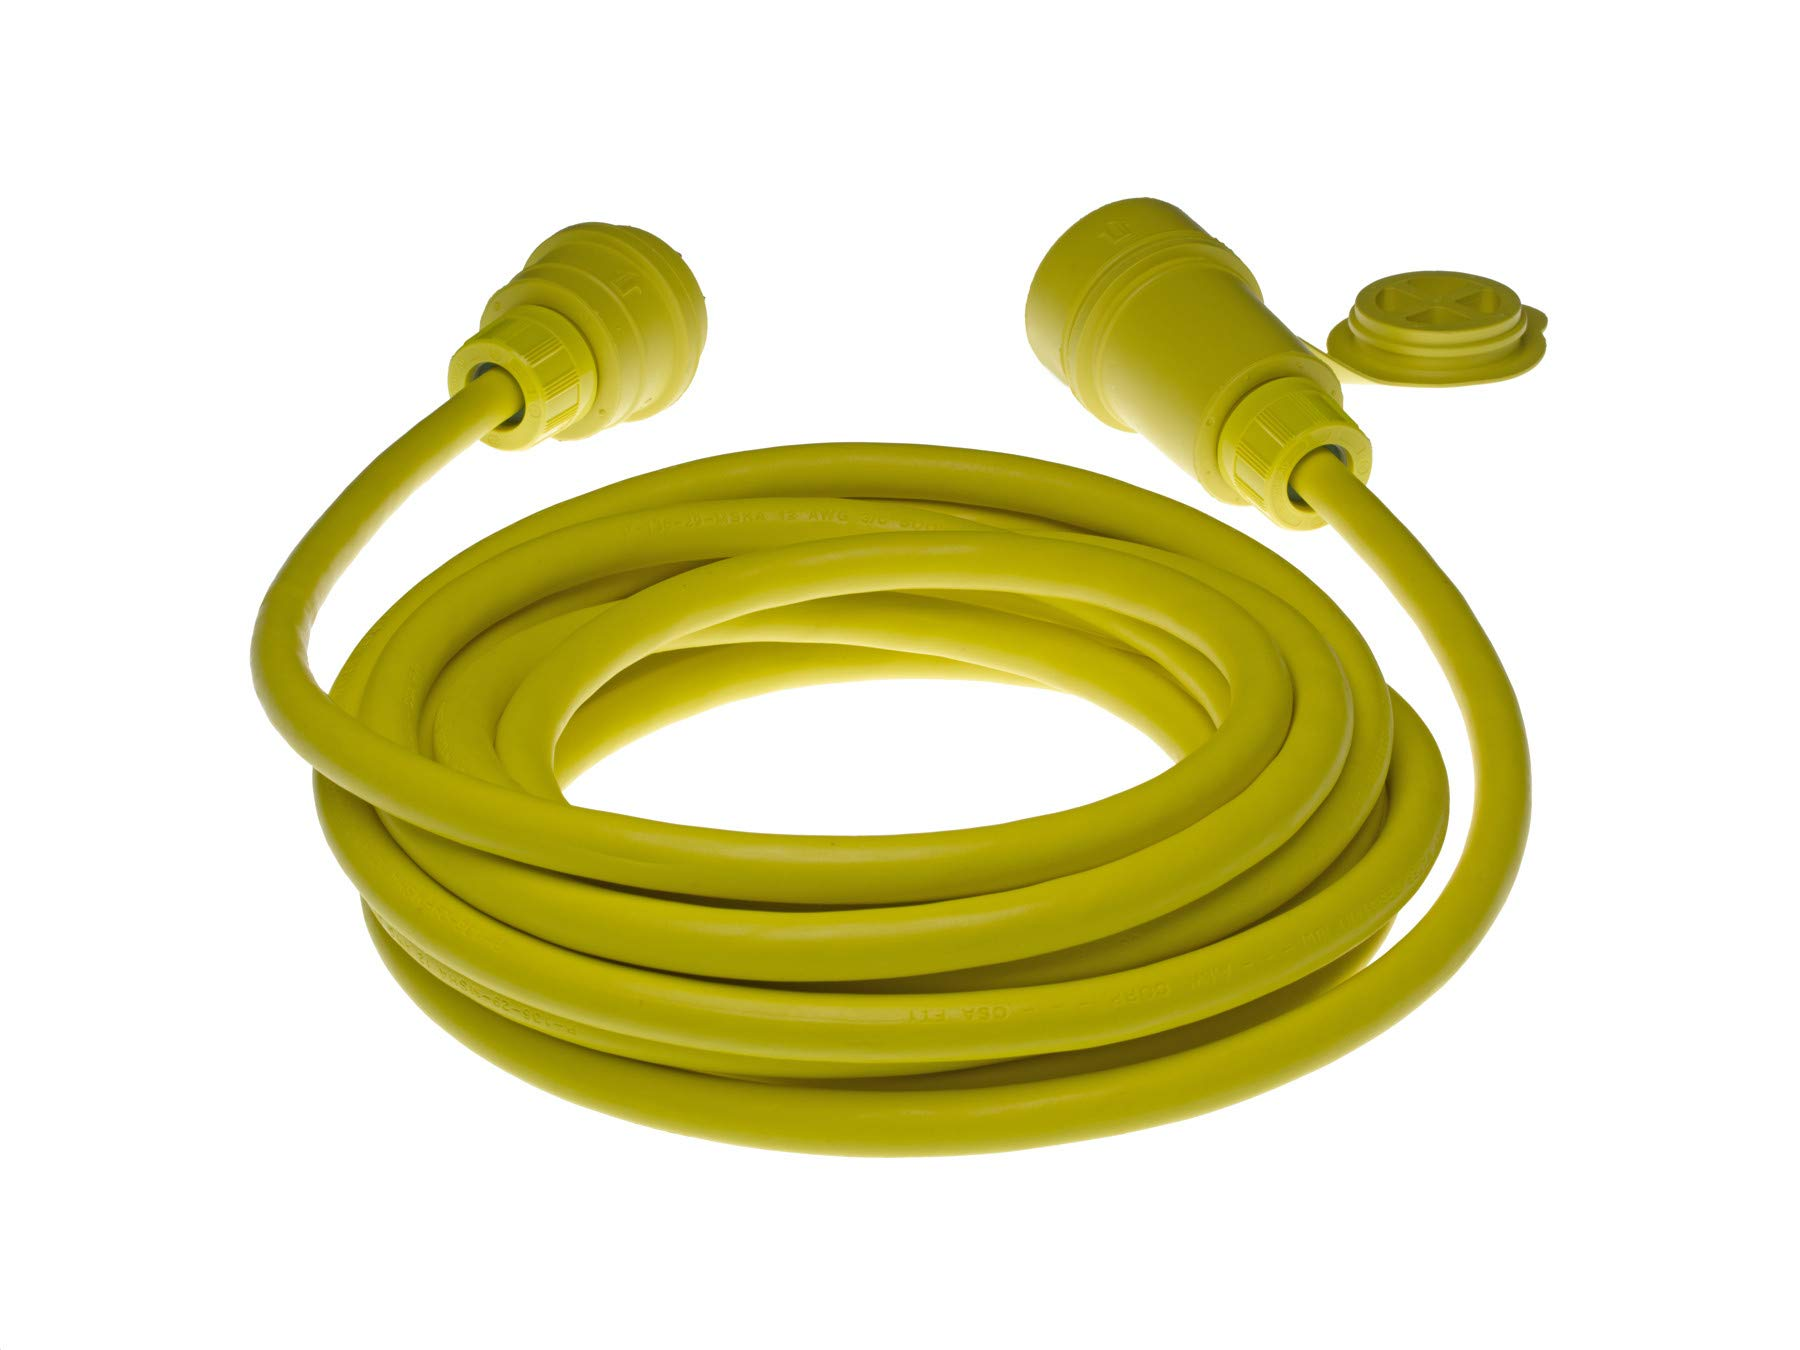 Woodhead 28W47A103 Watertite Wet Location Locking Blade Cordset, 3 Wires, 2 Poles, NEMA L5-30 Configuration, 10-Gauge SOOW Cord, Yellow, 30A Current, 125V Voltage, 25ft Cord Length by Woodhead (Image #1)